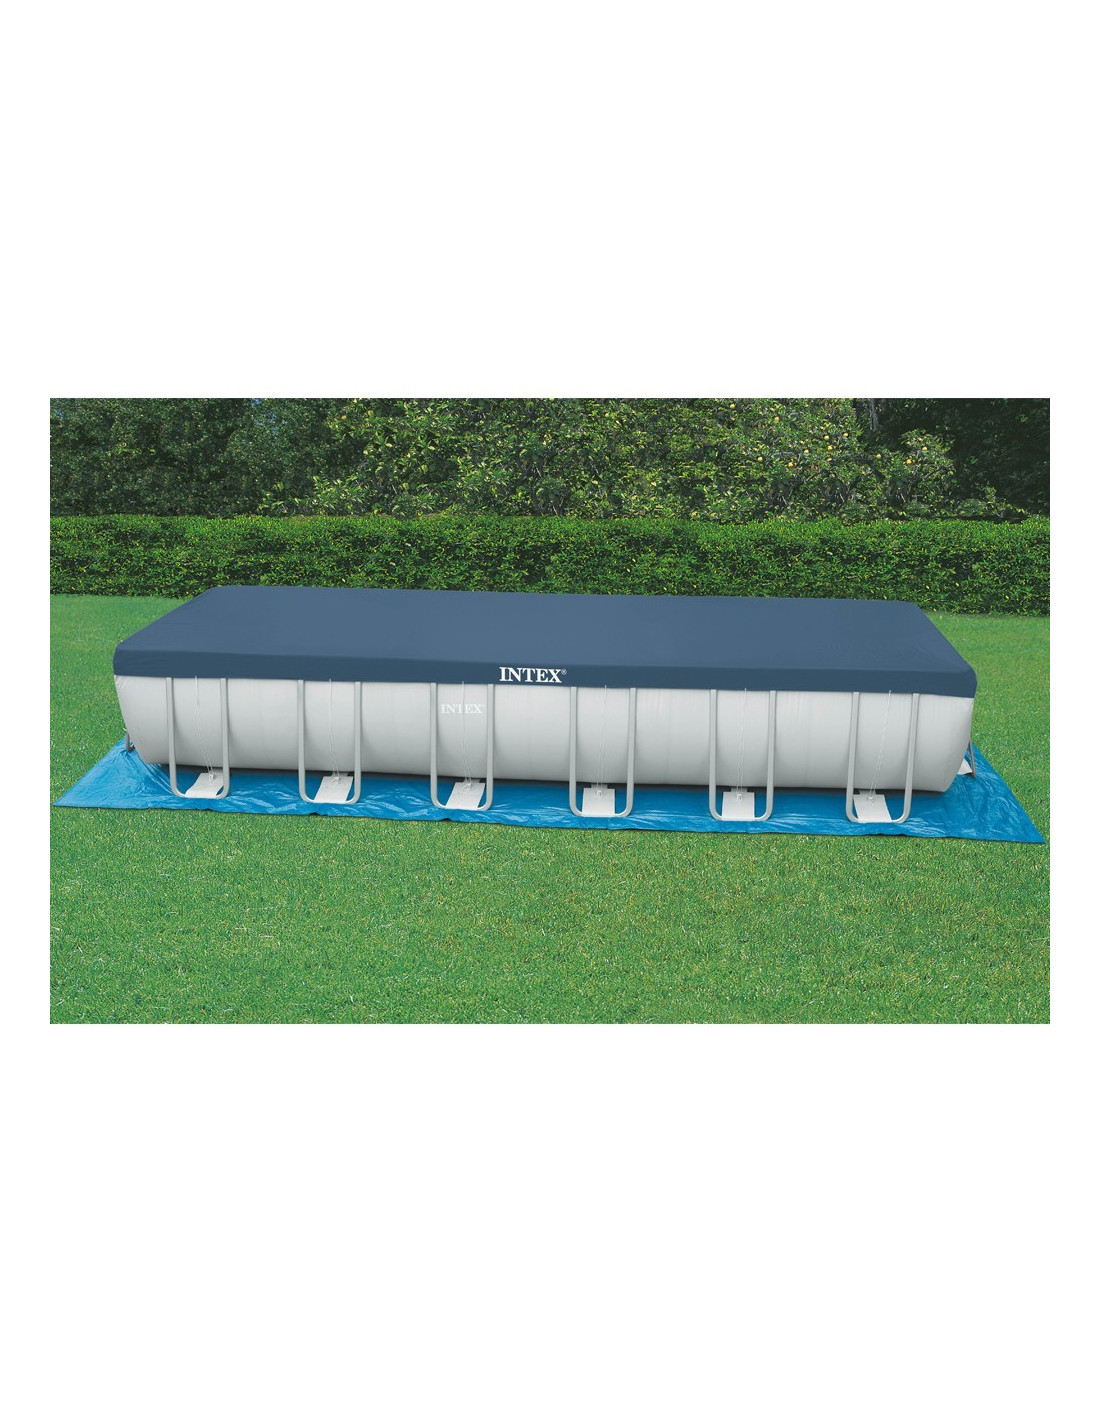 Intex piscine tubulaire rectangulaire ultra silver 549 x for Piscine intex tubulaire